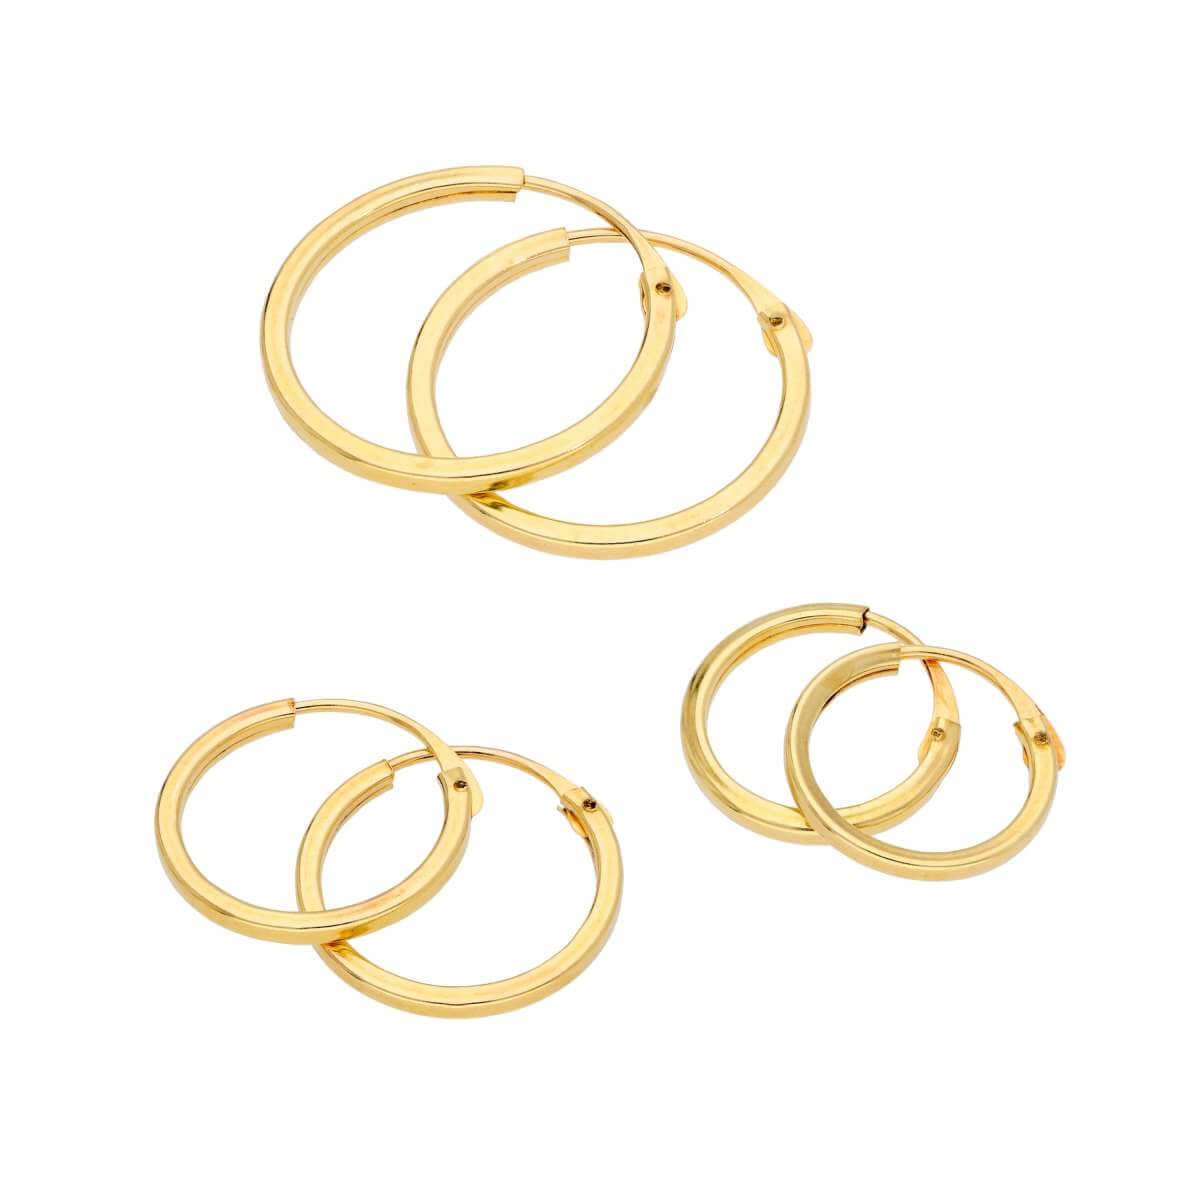 Triple 9ct Gold 1mm Square 10 12 14mm Hoop Earrings Set